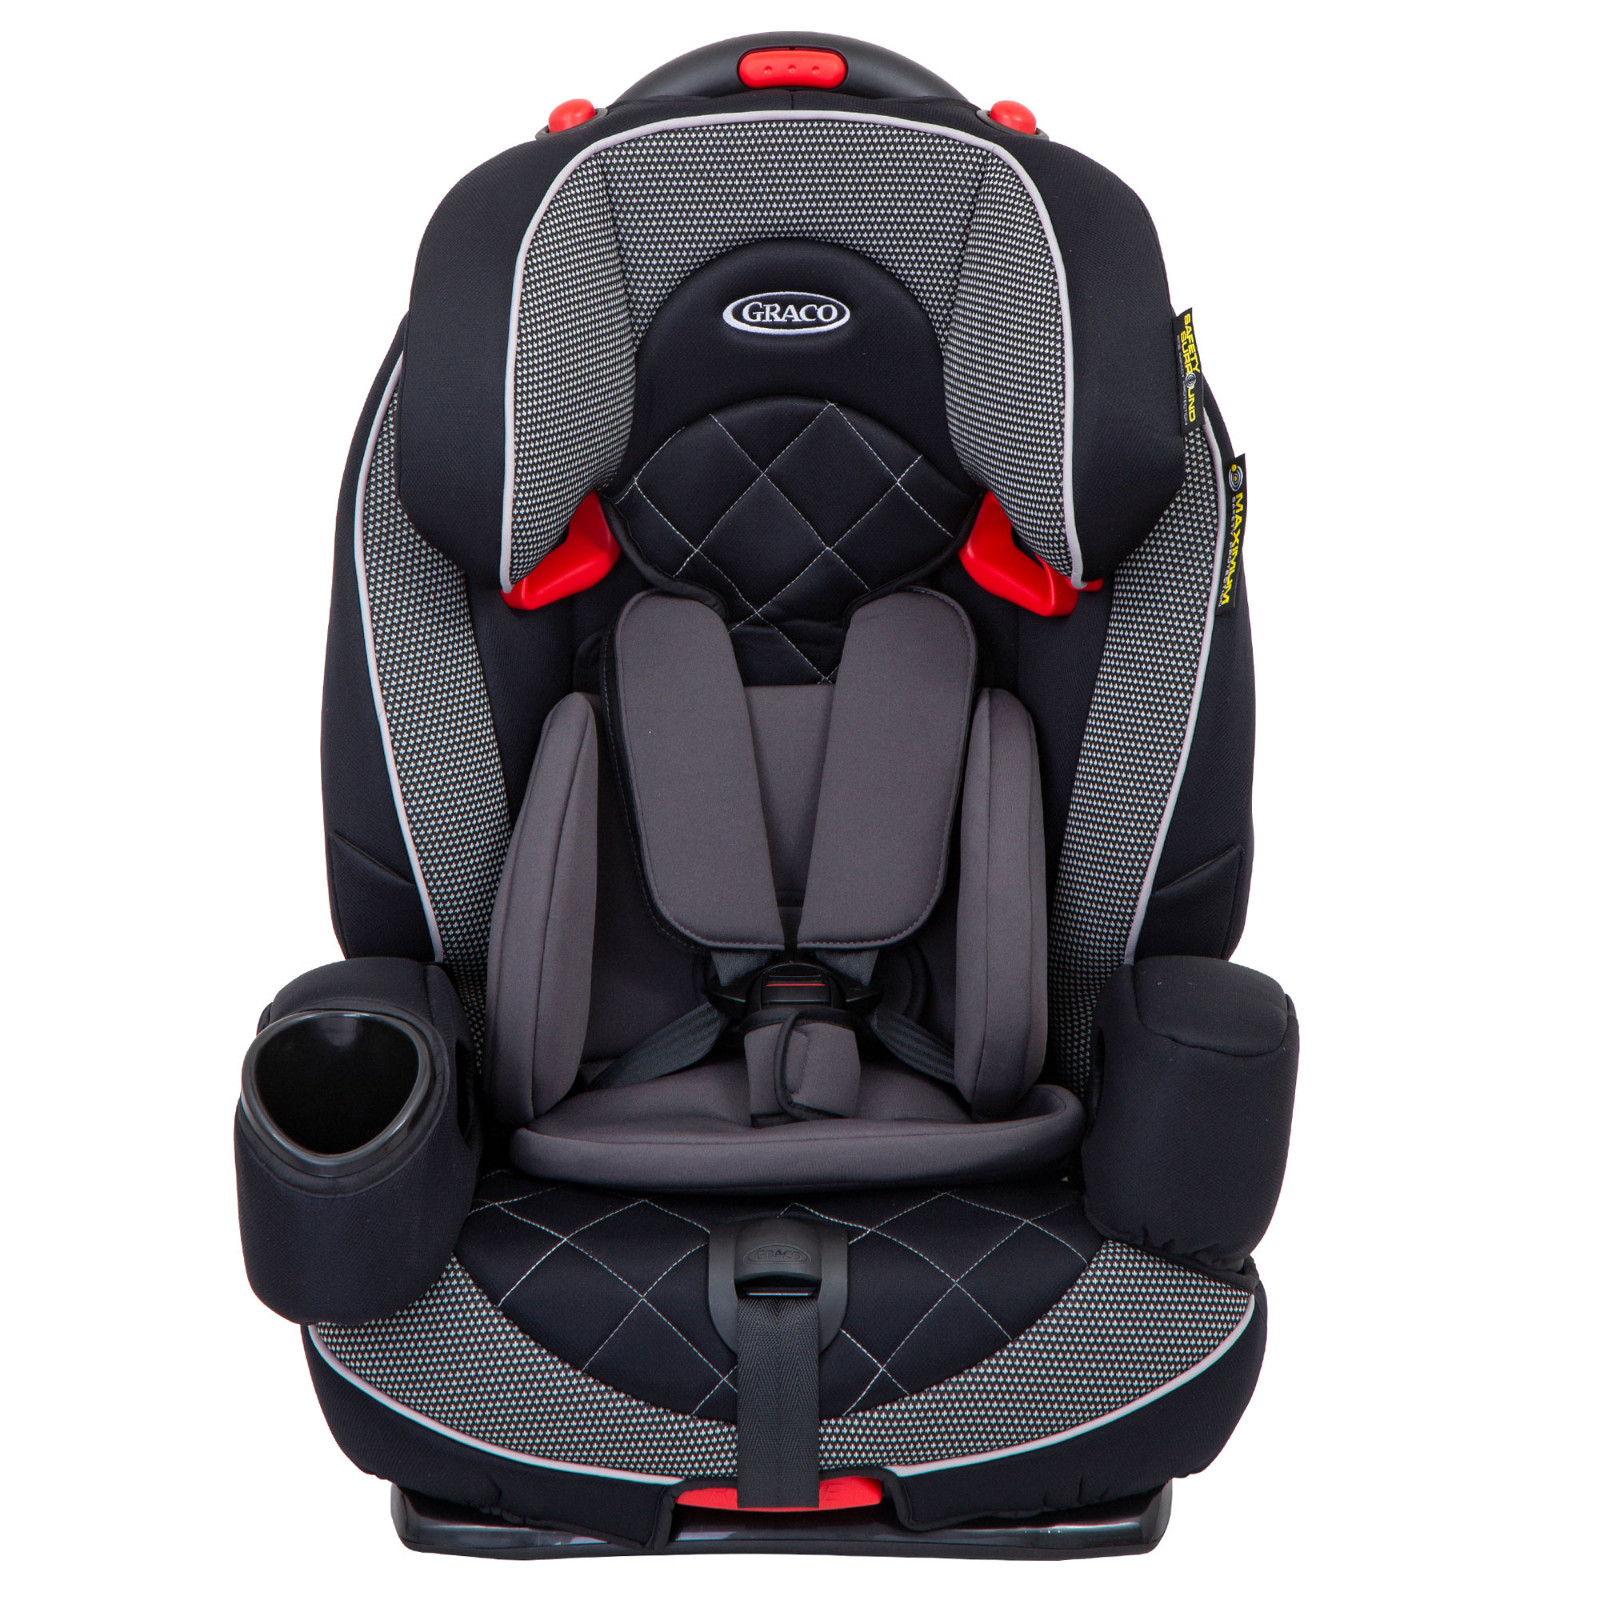 Groovy Graco Nautilus Elite Group 1 2 3 Car Seat Lunar Pabps2019 Chair Design Images Pabps2019Com